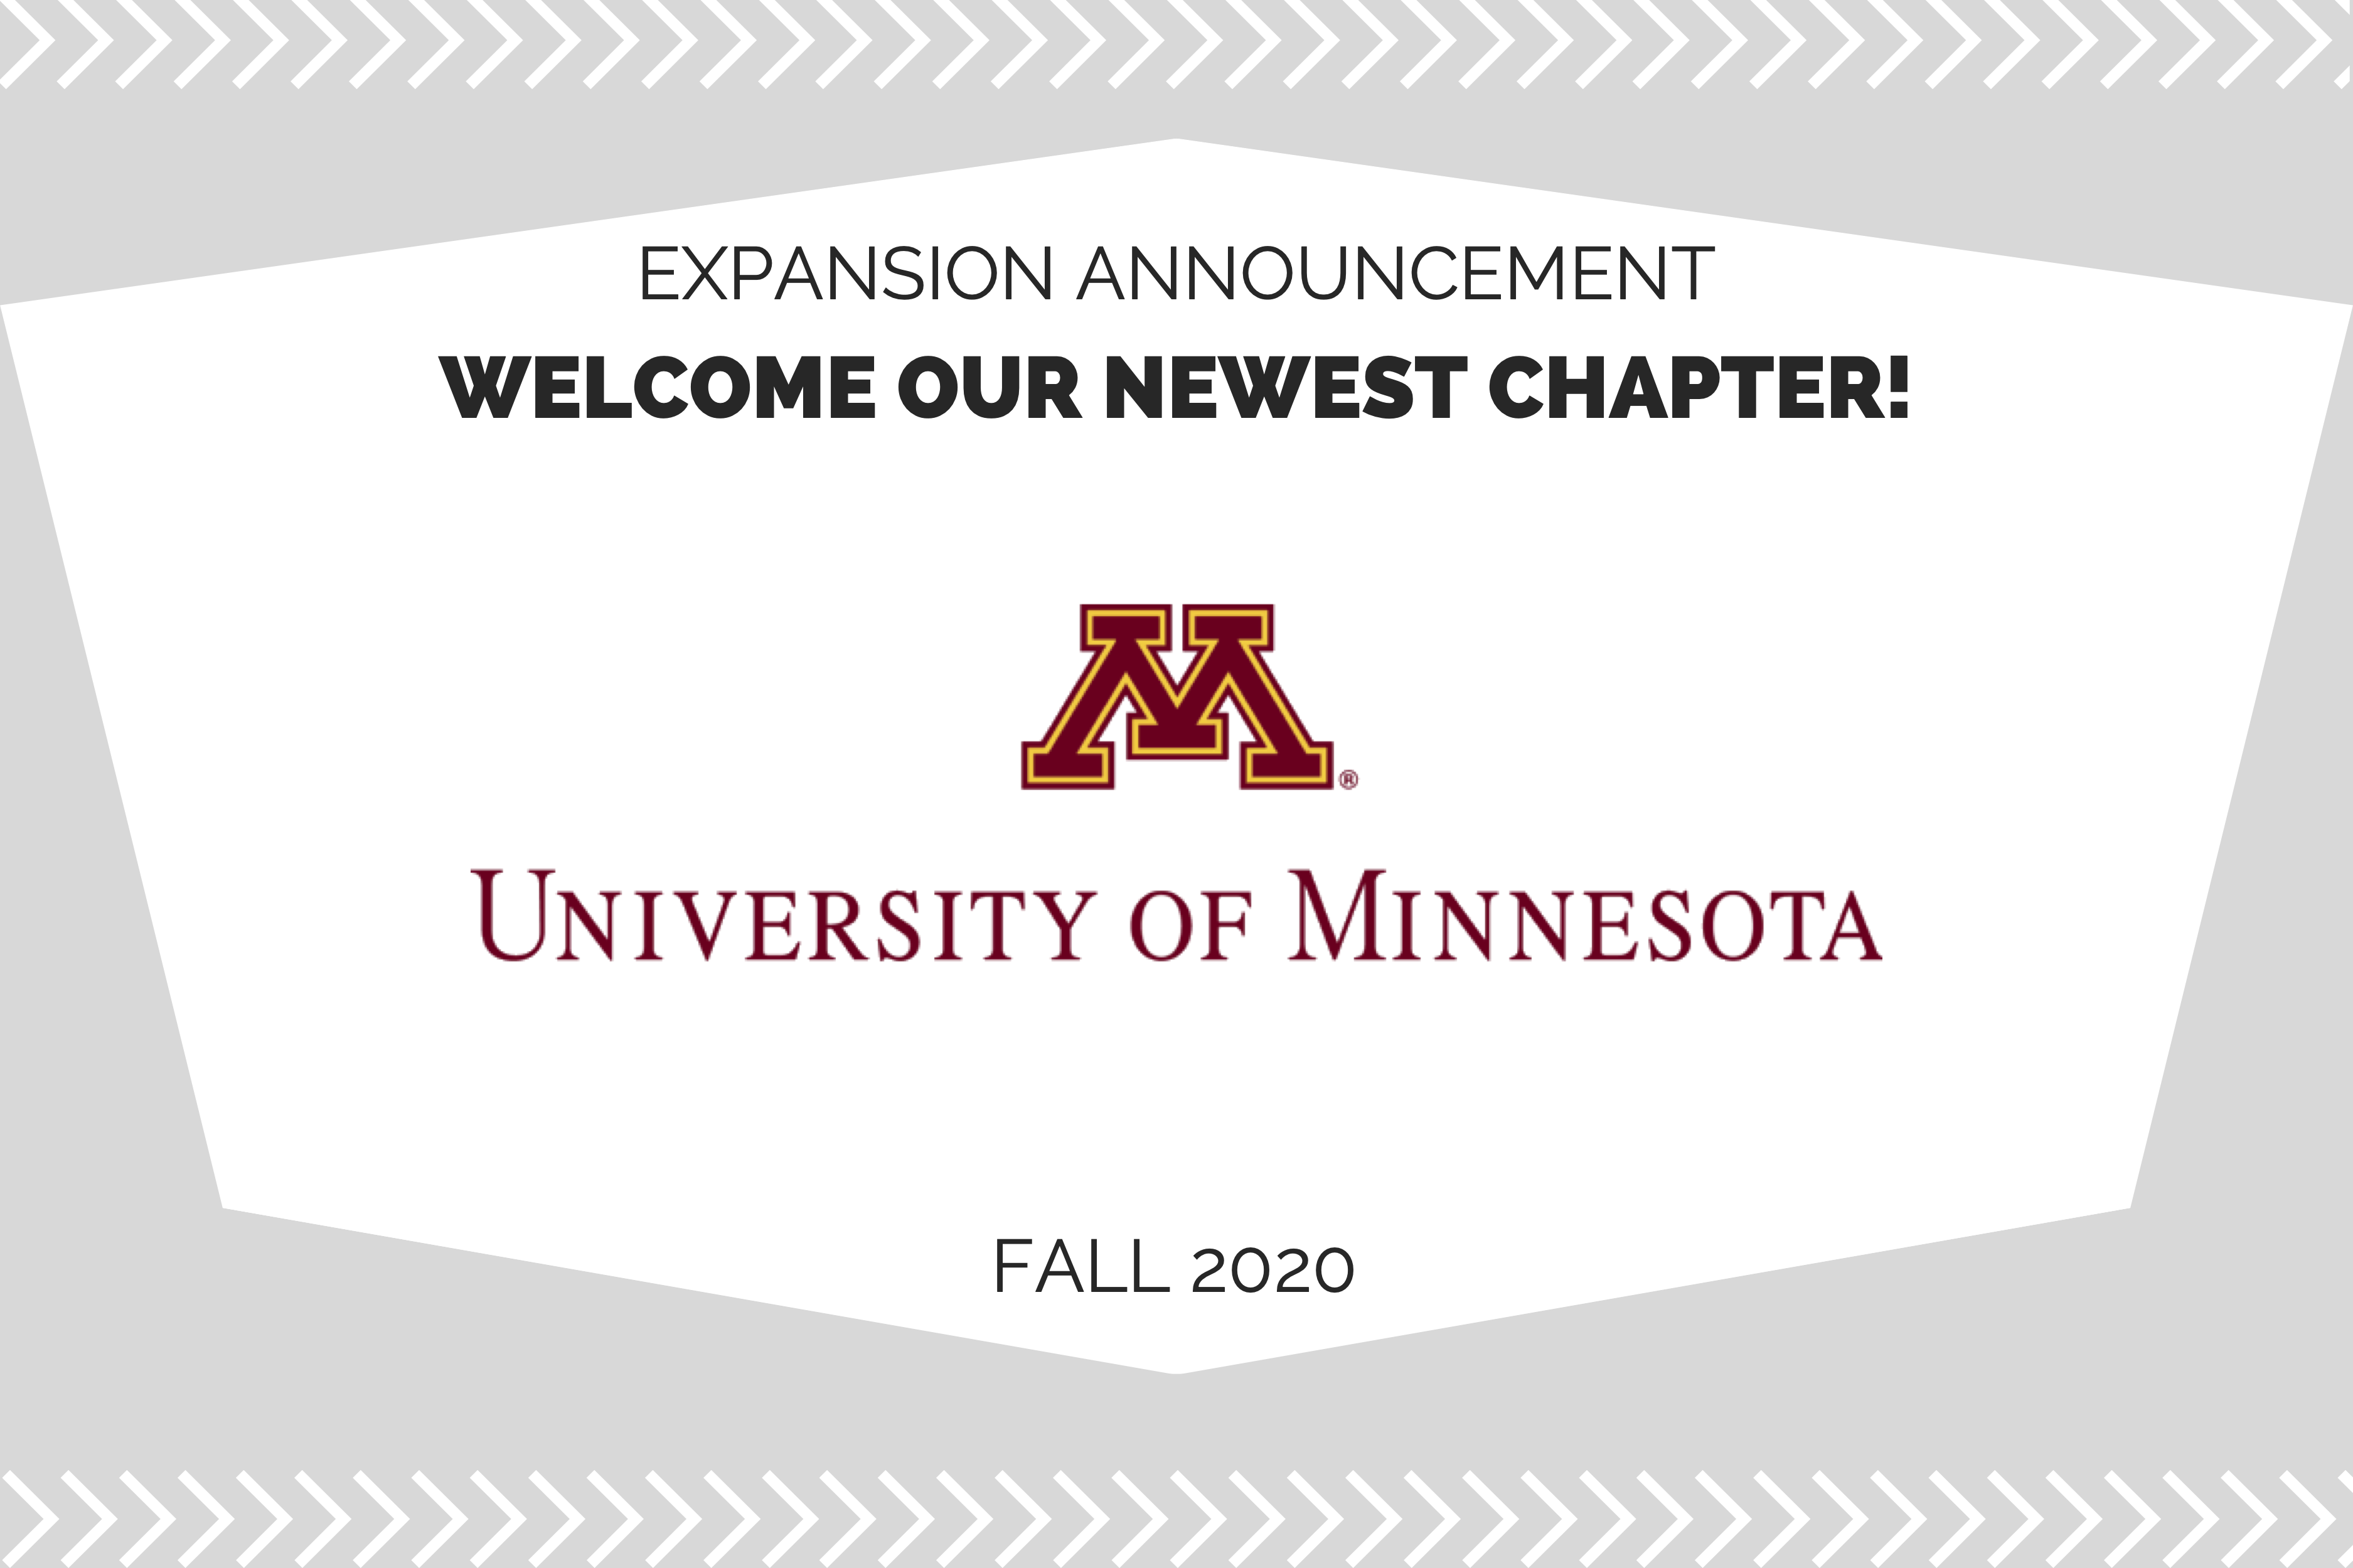 Welcome our newest chapter at the University of Minnesota